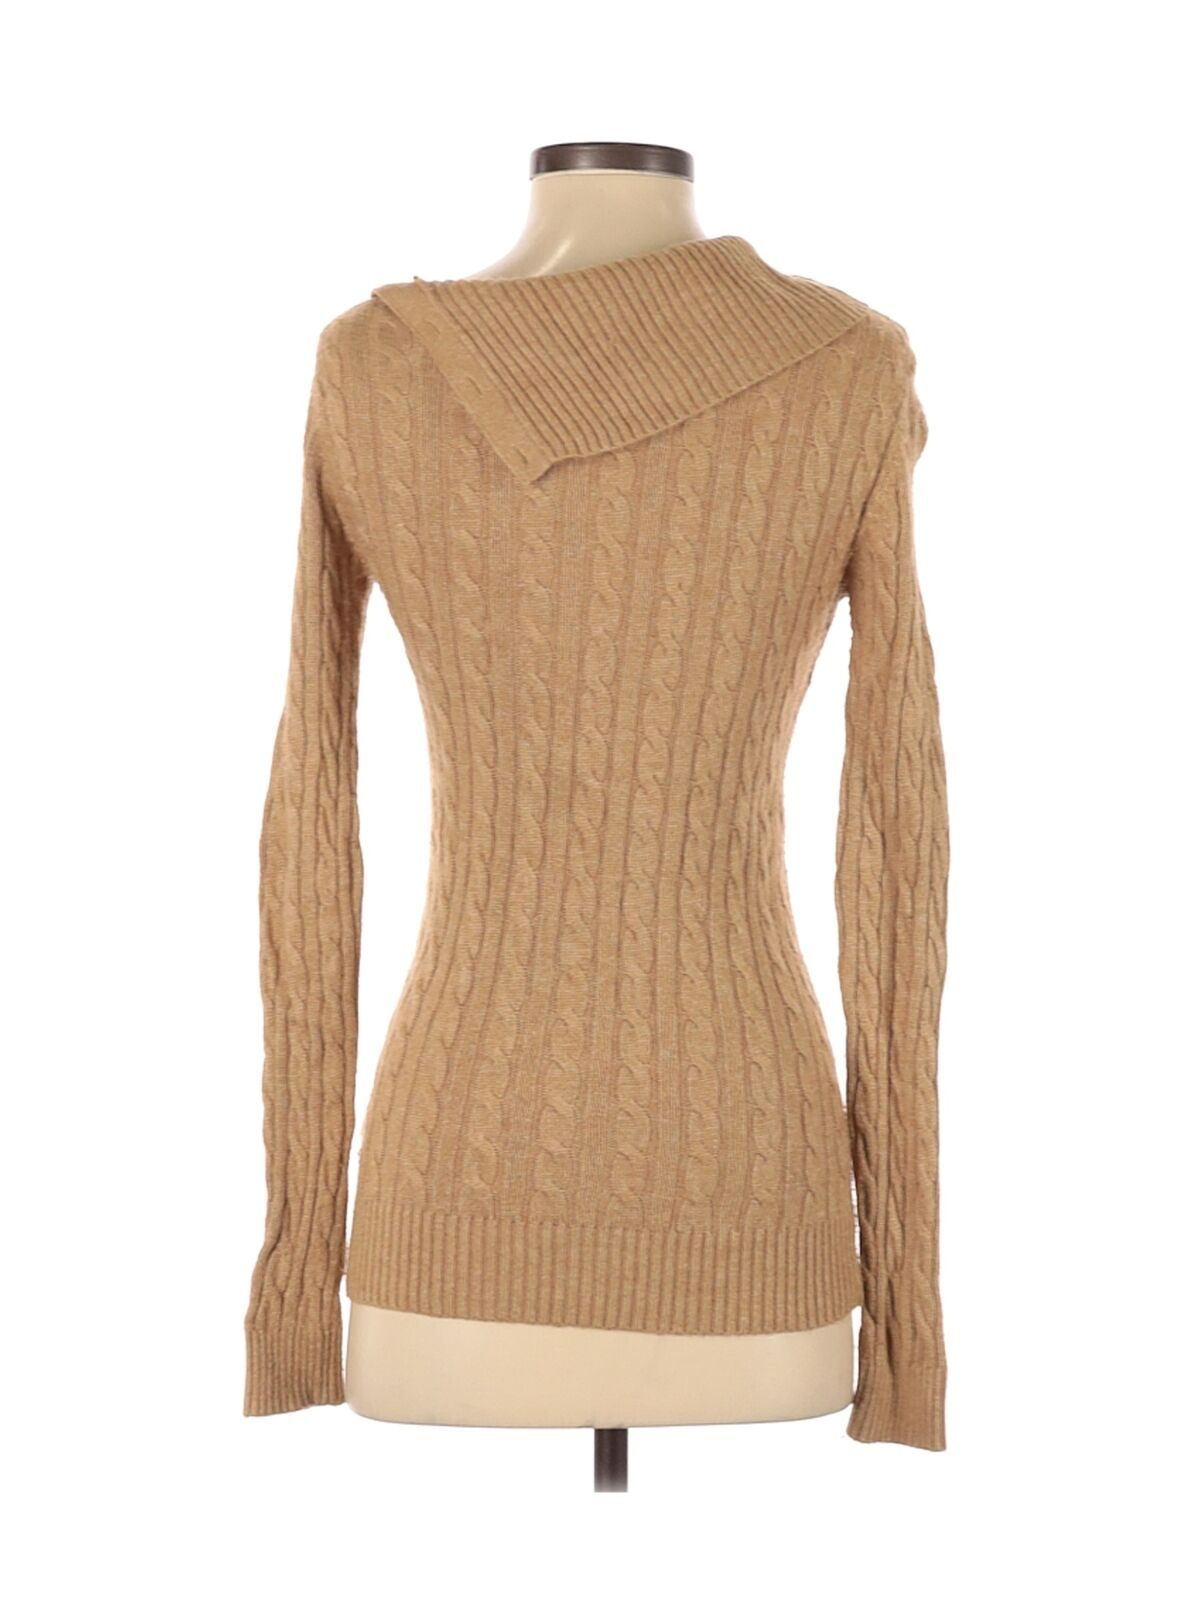 Tommy Hilfiger Women Brown Pullover Sweater XS - image 2